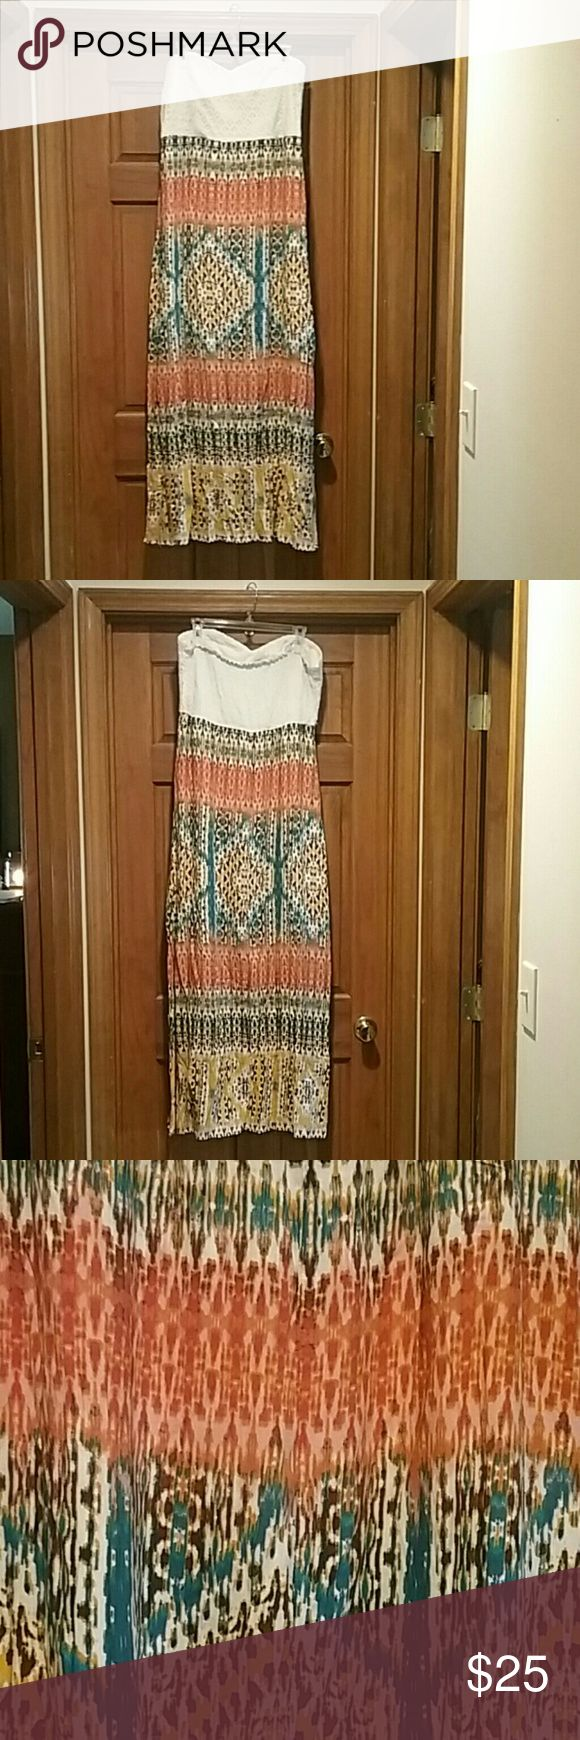 """Maurices tribal maxi dress Maurices XXL tube maxi dress. Top to bottom is 51"""" with a 22"""" slit on each side. Dress is lined. Sticky tape built into top to help hold it up. Front of top had lace overlay. Back is cinched and stretchy. Colorful tribal like print. maurices Dresses Maxi"""